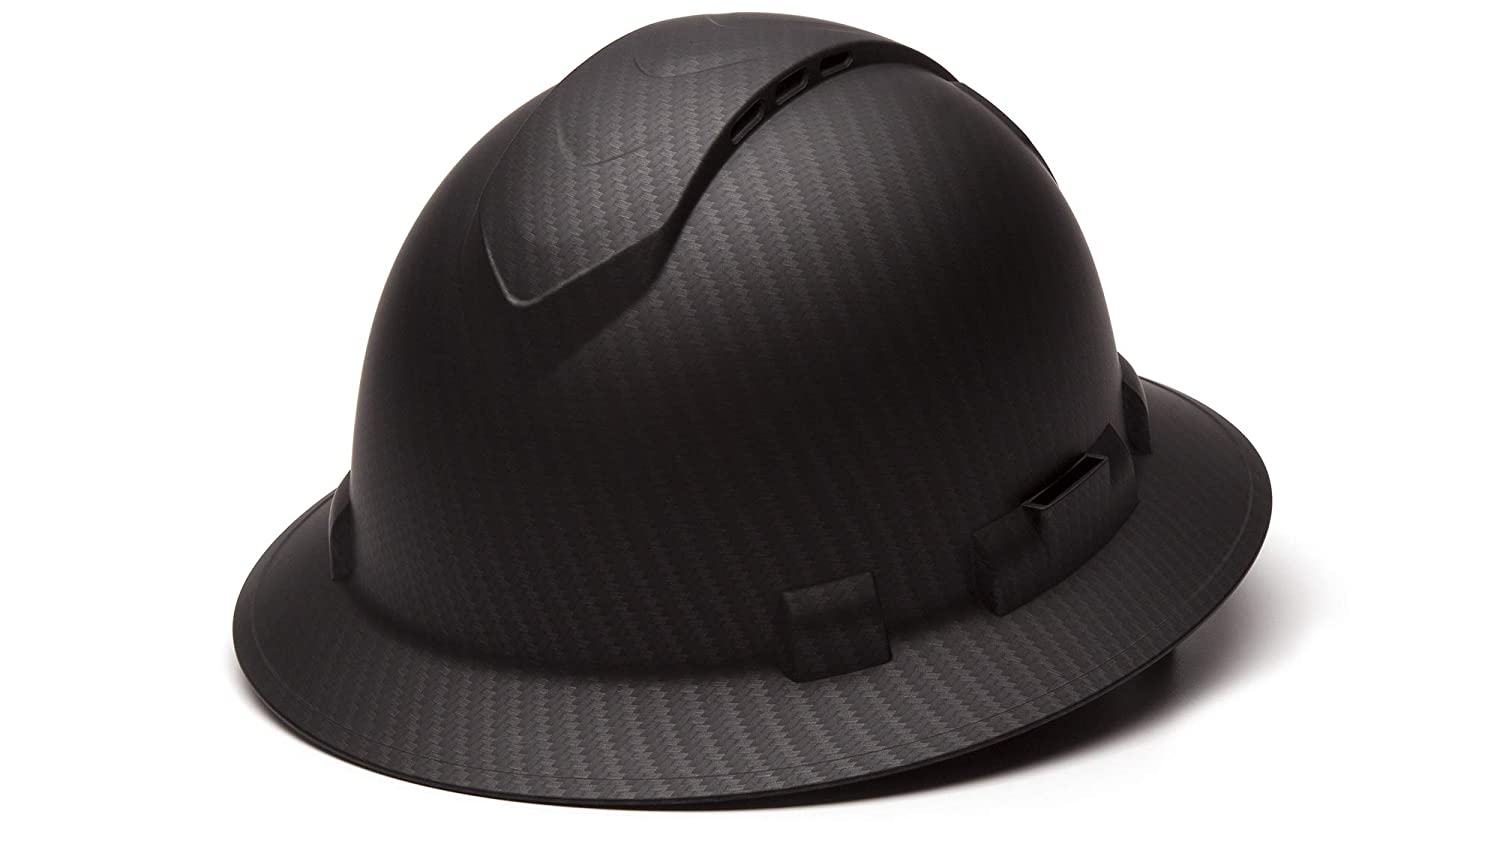 Pyramex Ridgeline Full Brim Hard Hat, Vented, 4-Point Ratchet Suspension, Matte Black Graphite Pattern